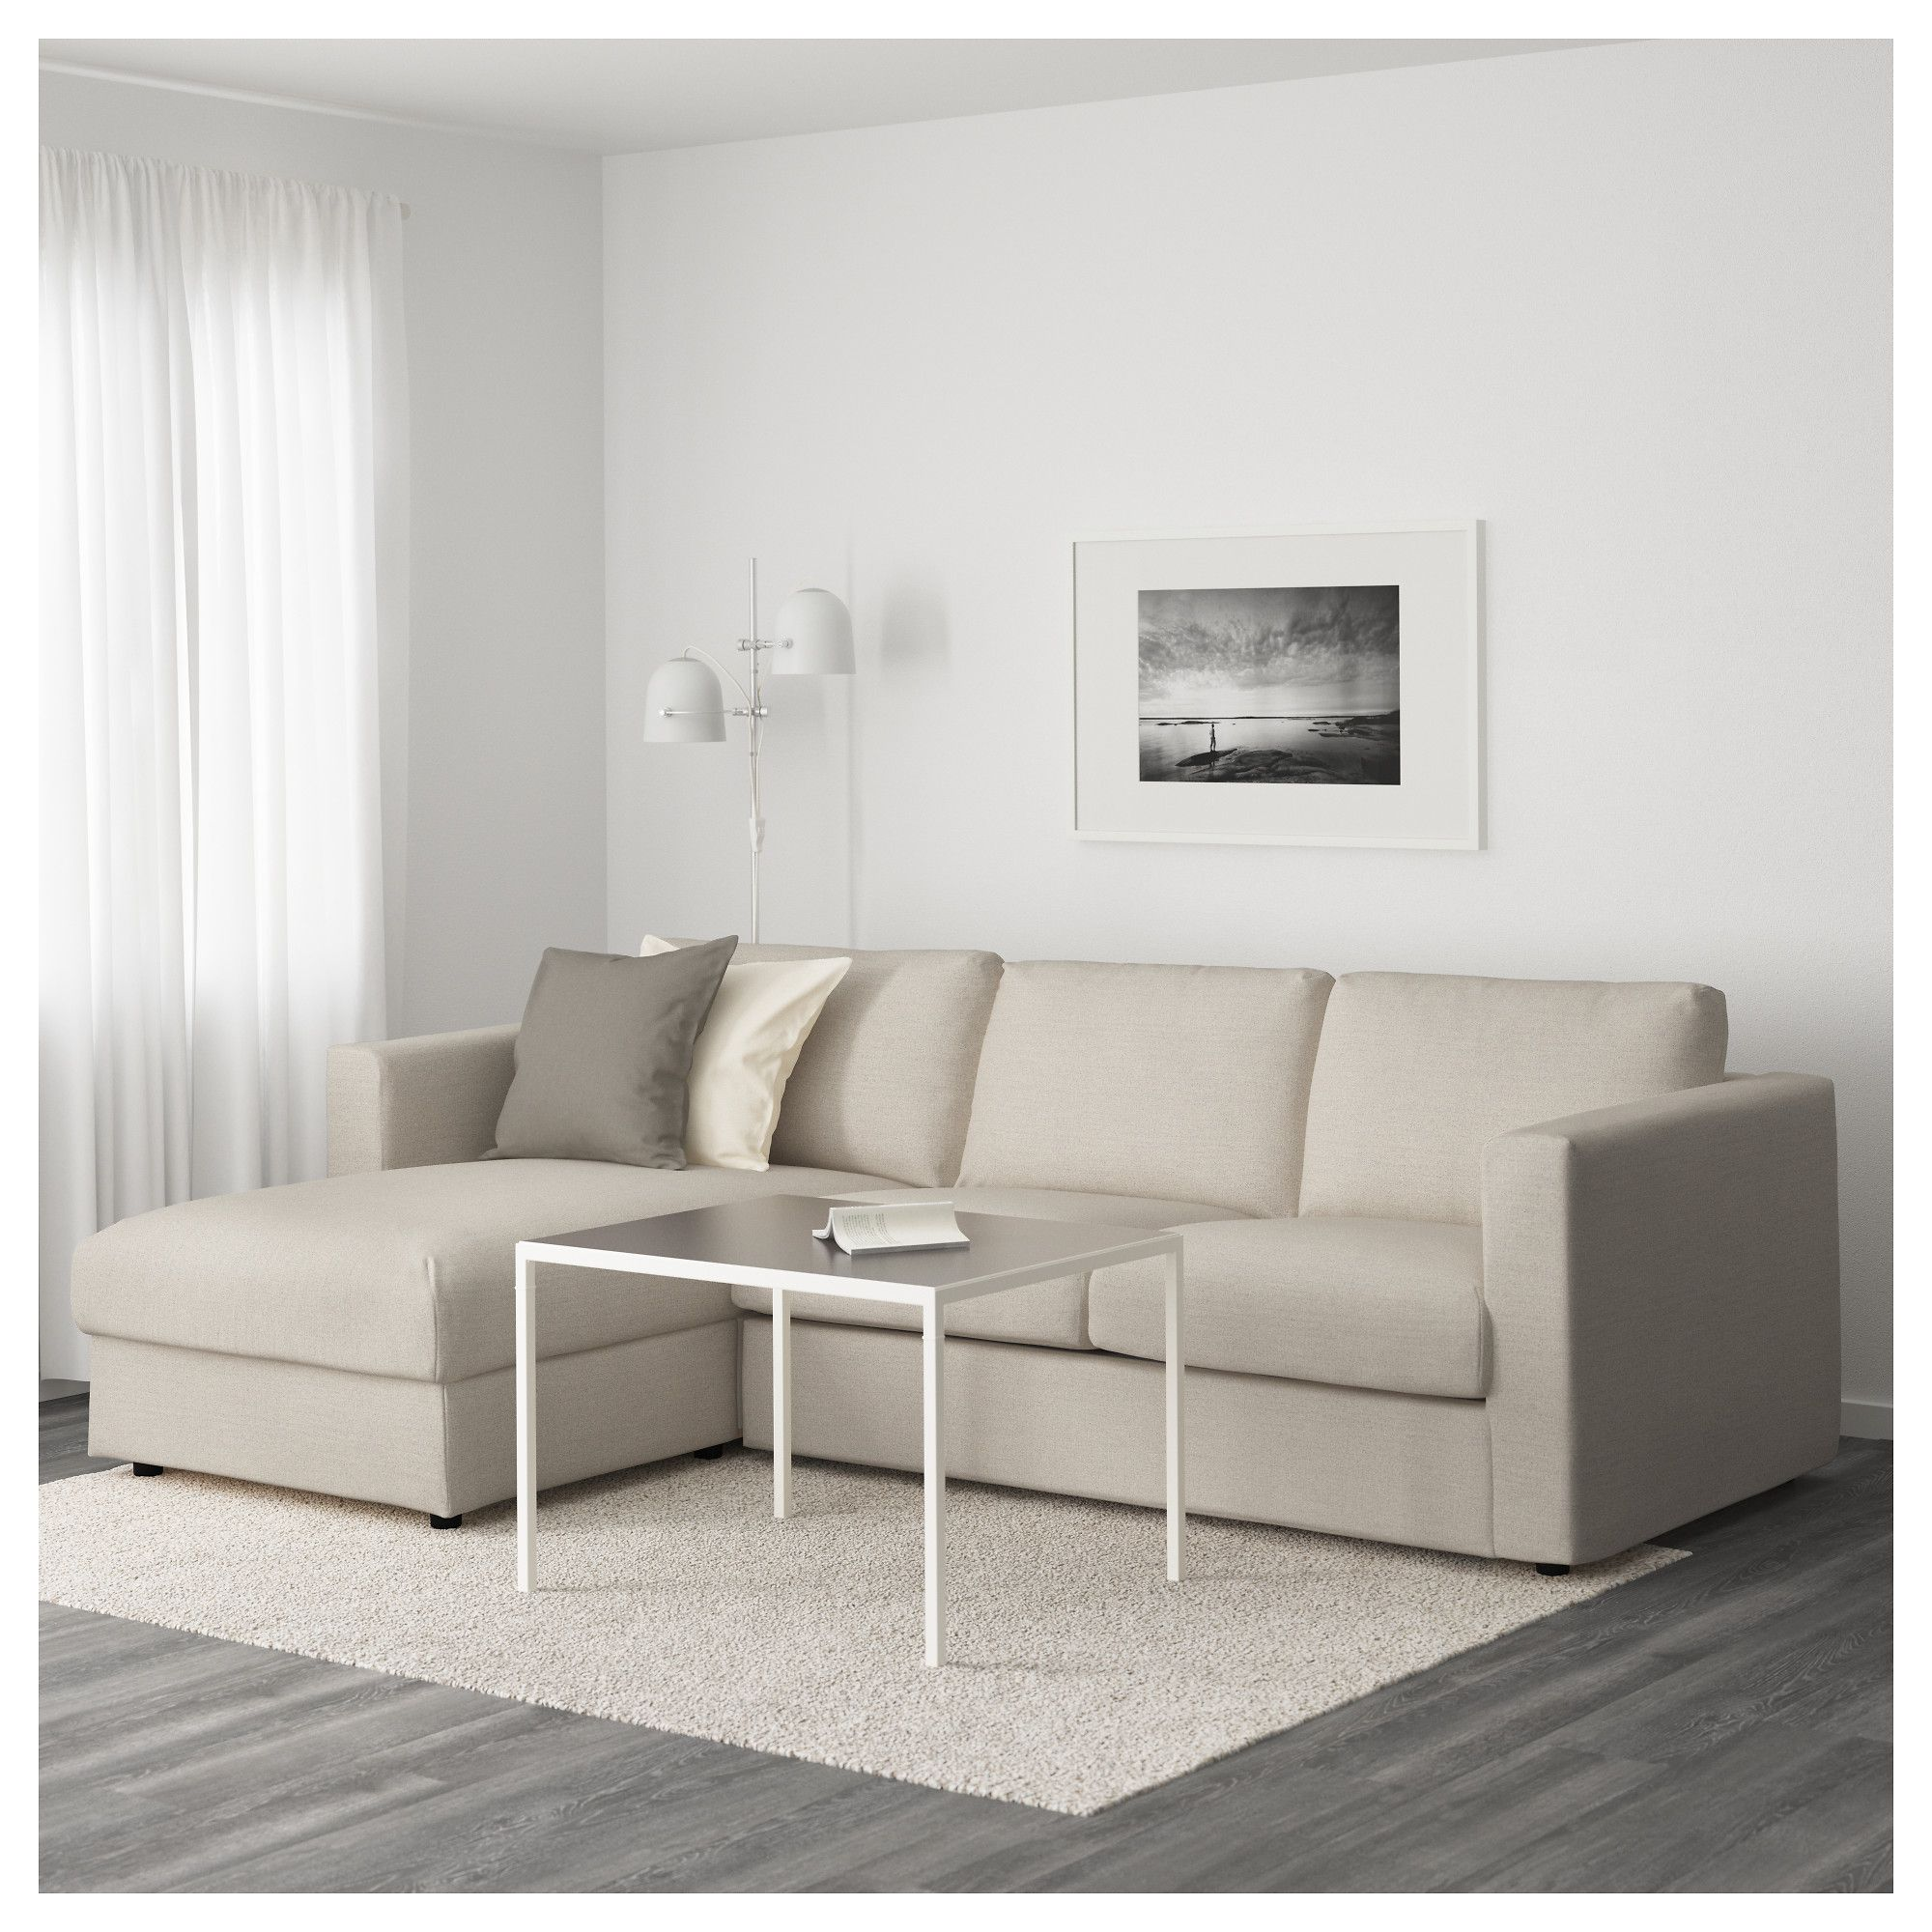 Divano Friheten Beige Vimle Sofa With Chaise Gunnared Beige Ideas For The House